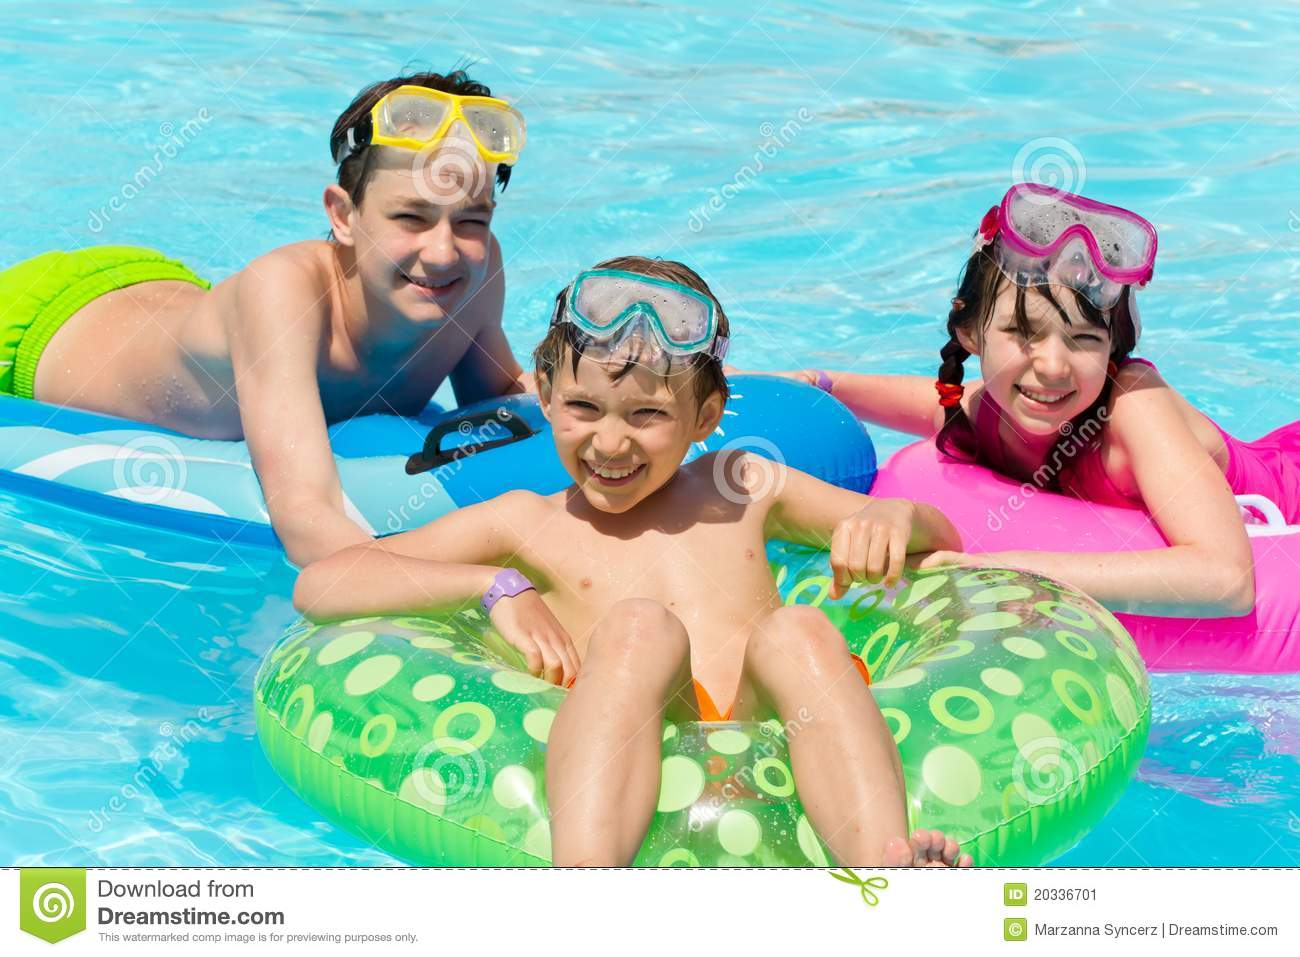 Children Playing In Pool Stock Image - Image: 20336701